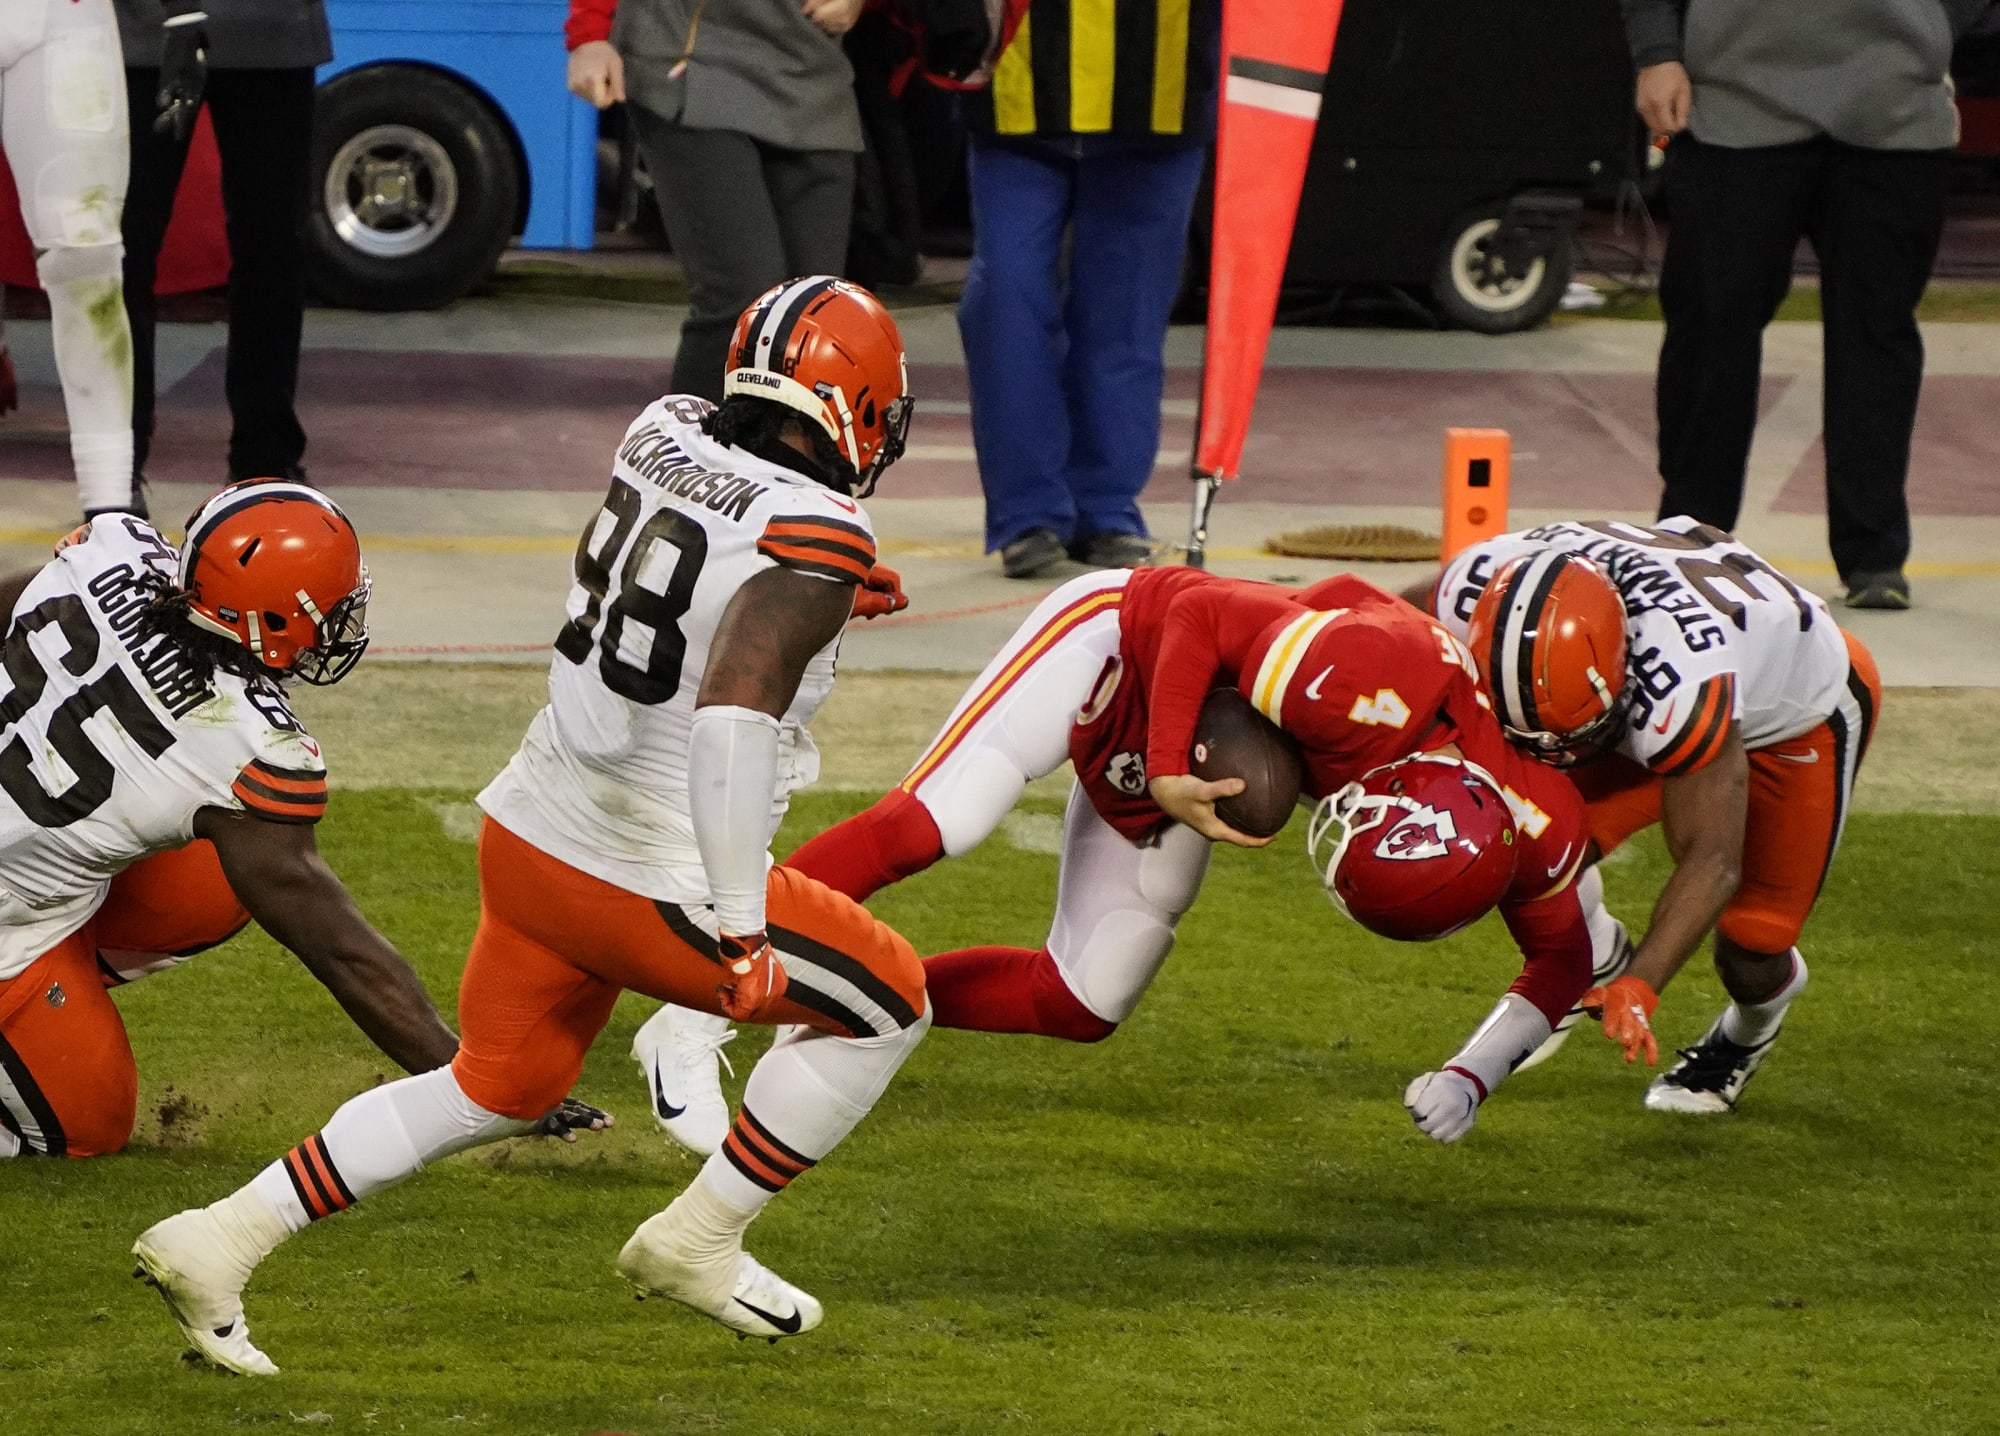 Bad coaching costs Cleveland Browns win over Kansas City Chiefs